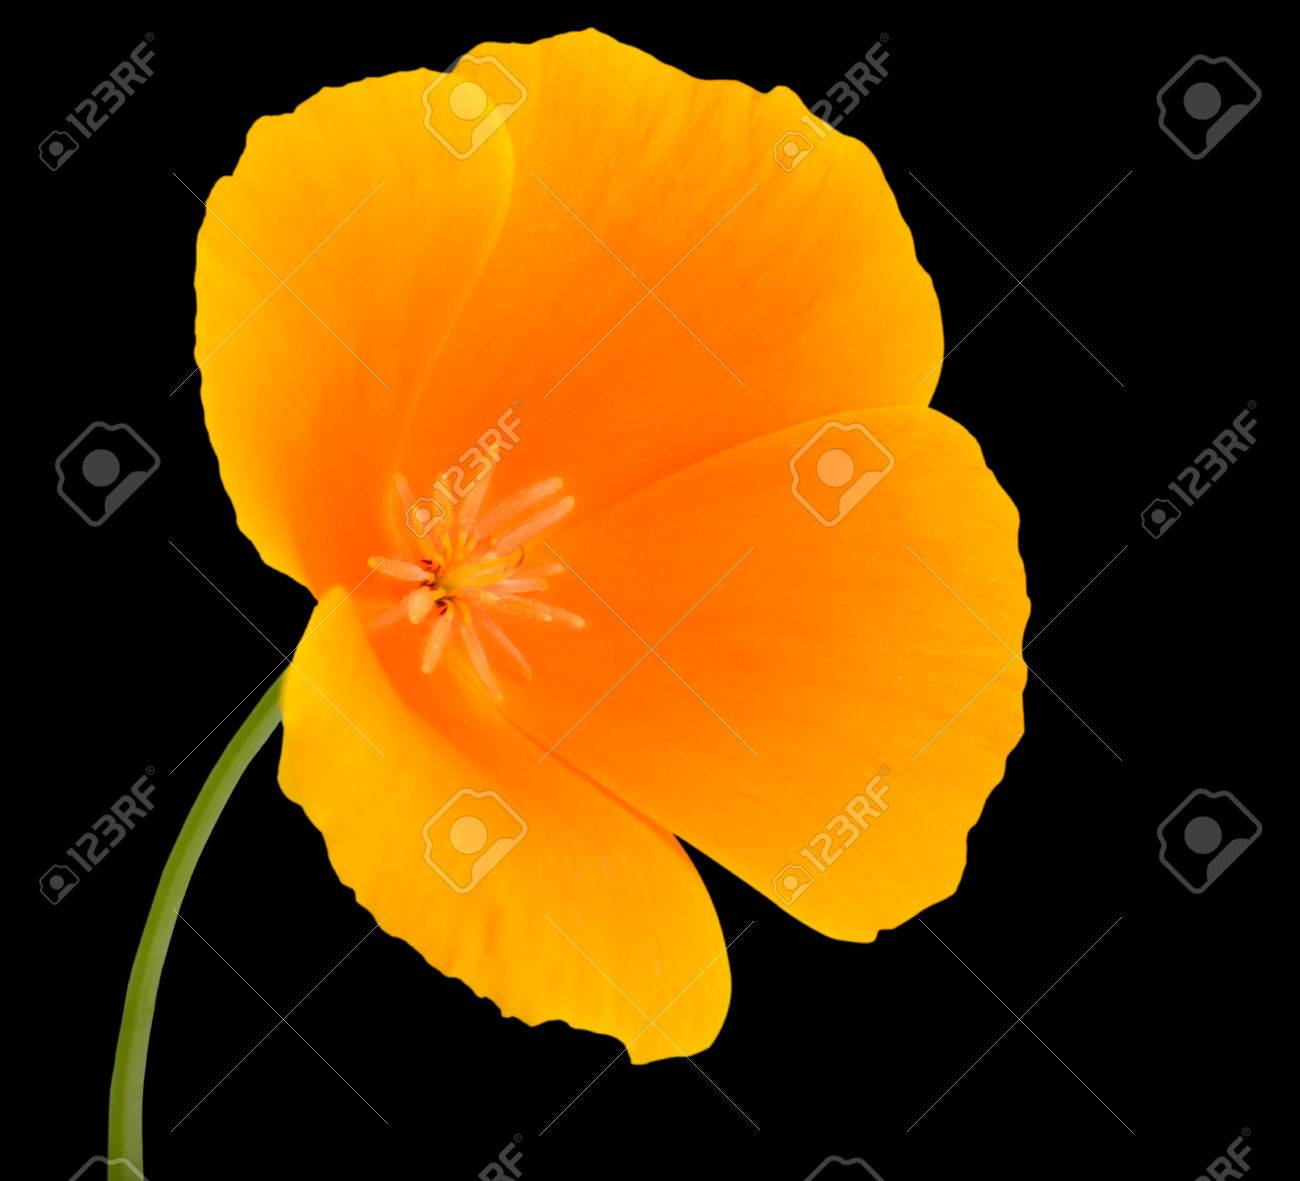 Yellow Wildflower Flower With Orange Center On Green Stick Isolated